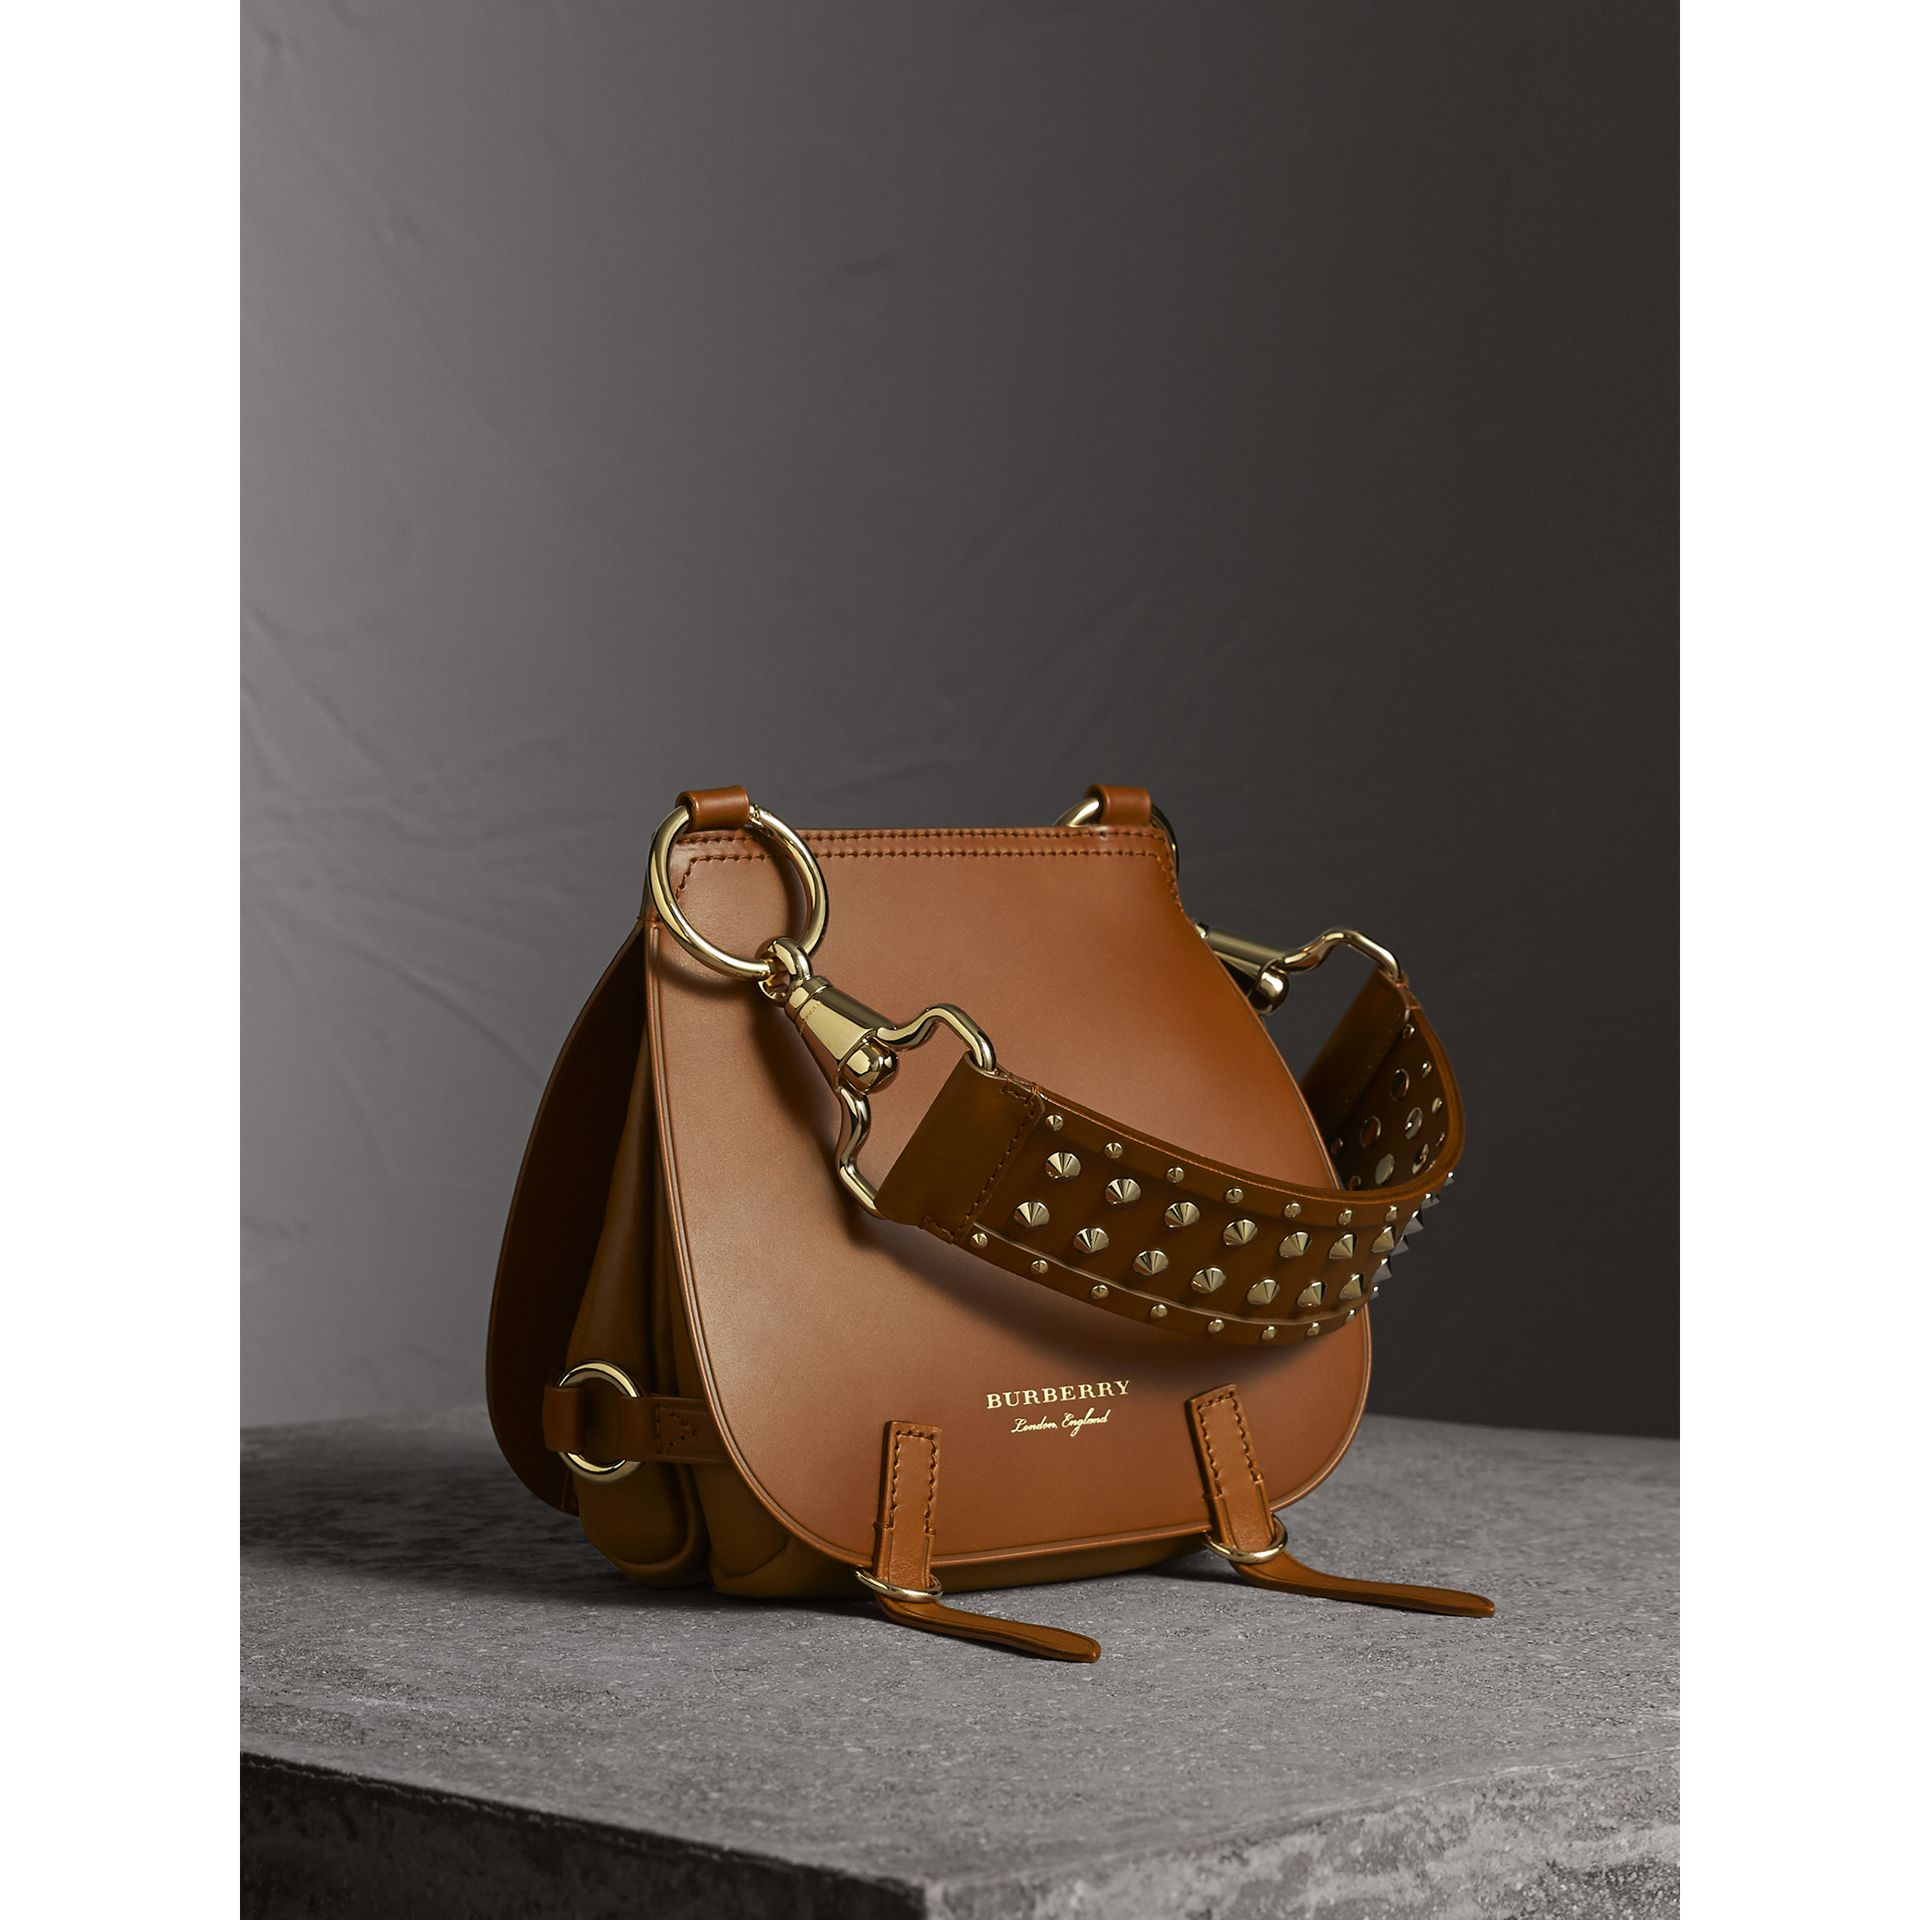 Sac The Bridle en cuir et alligator - Femme | Burberry - photo de la galerie 1